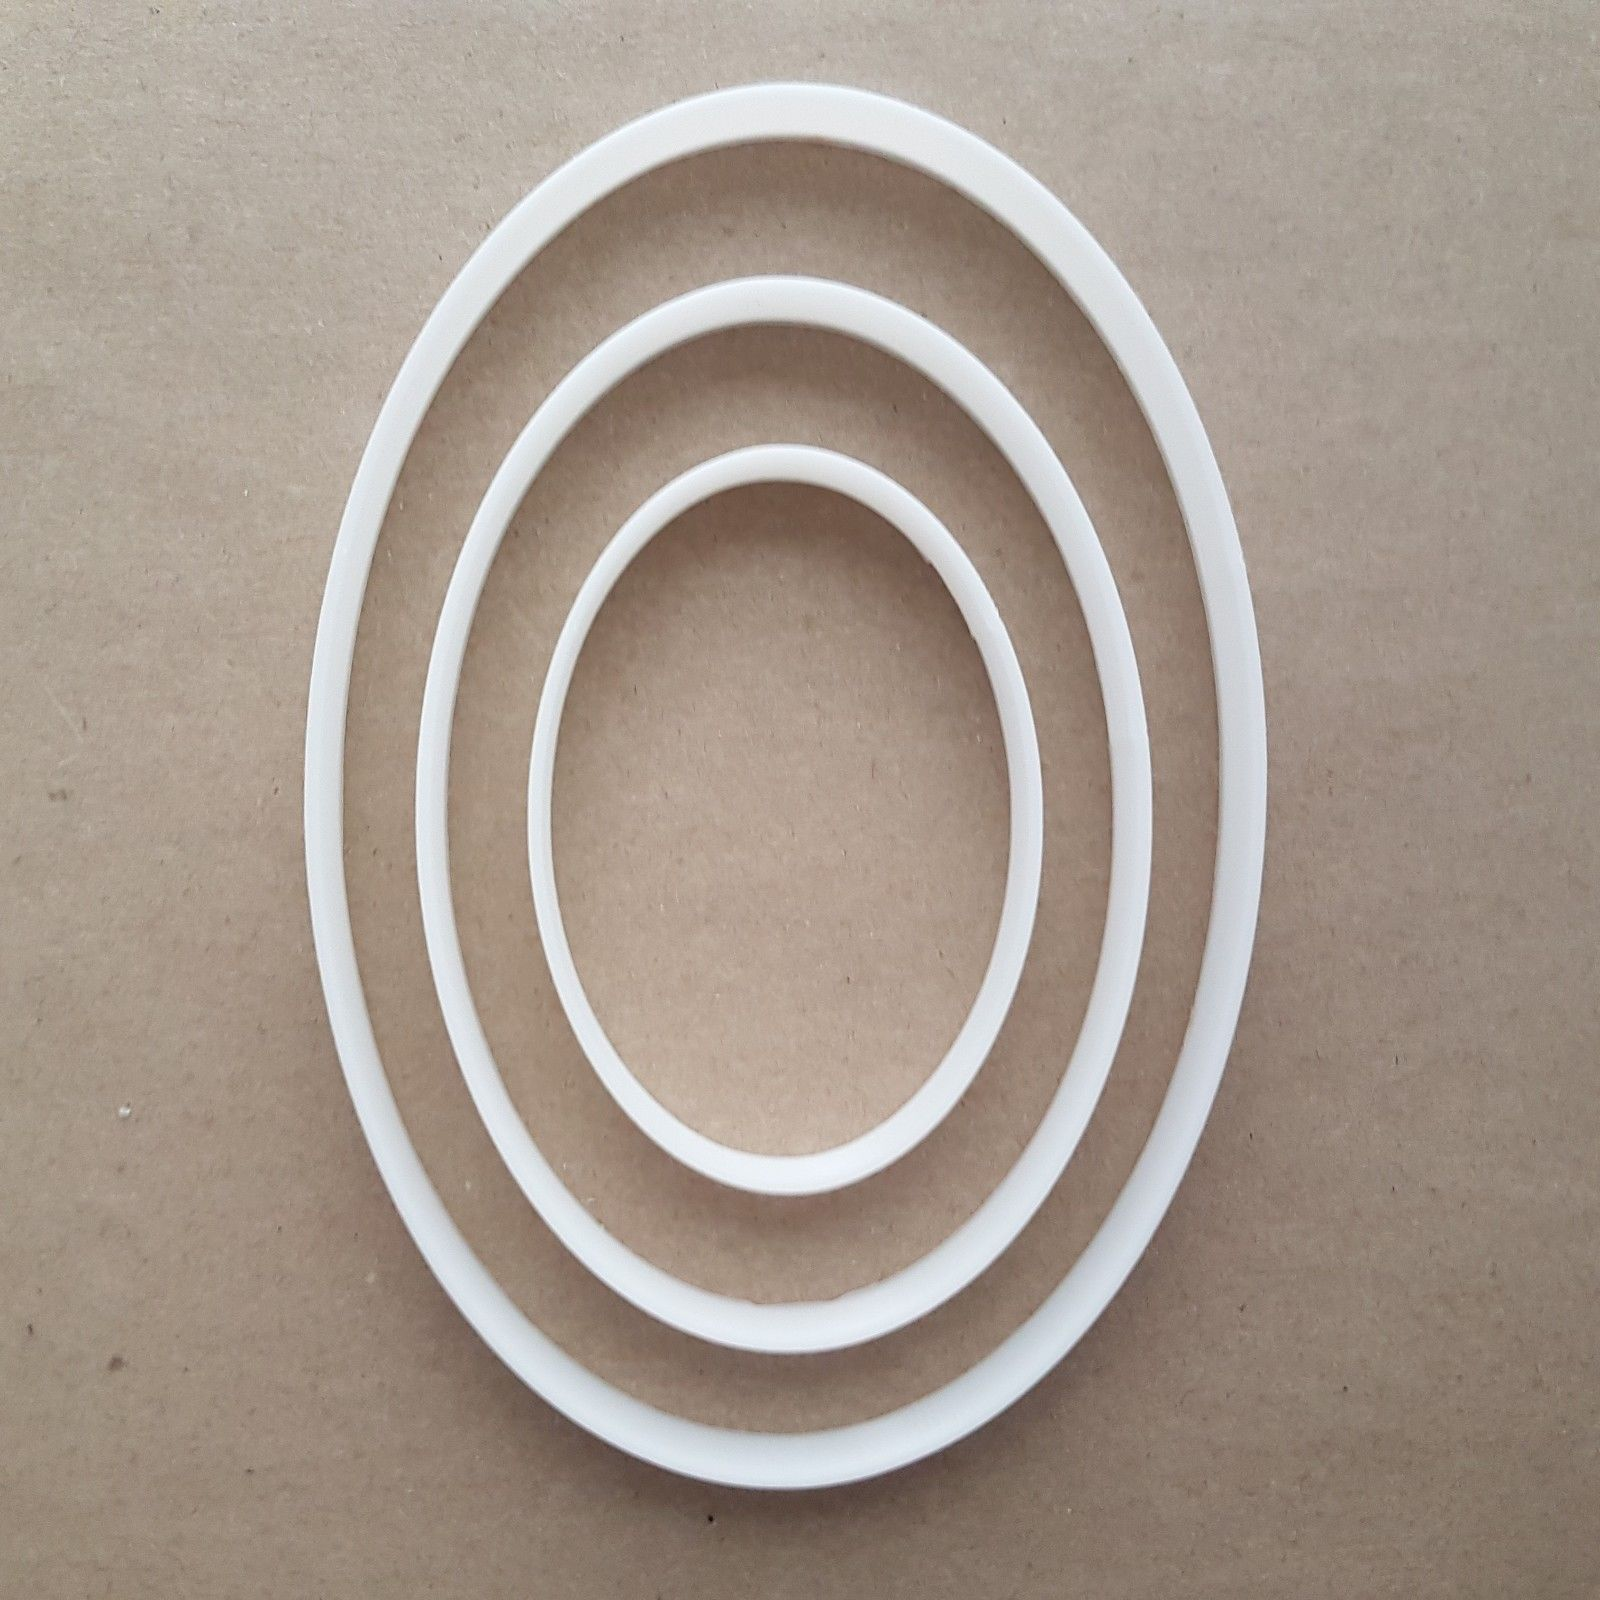 Oval Curve Egg Ellipse Shape Cookie Cutter Dough Biscuit